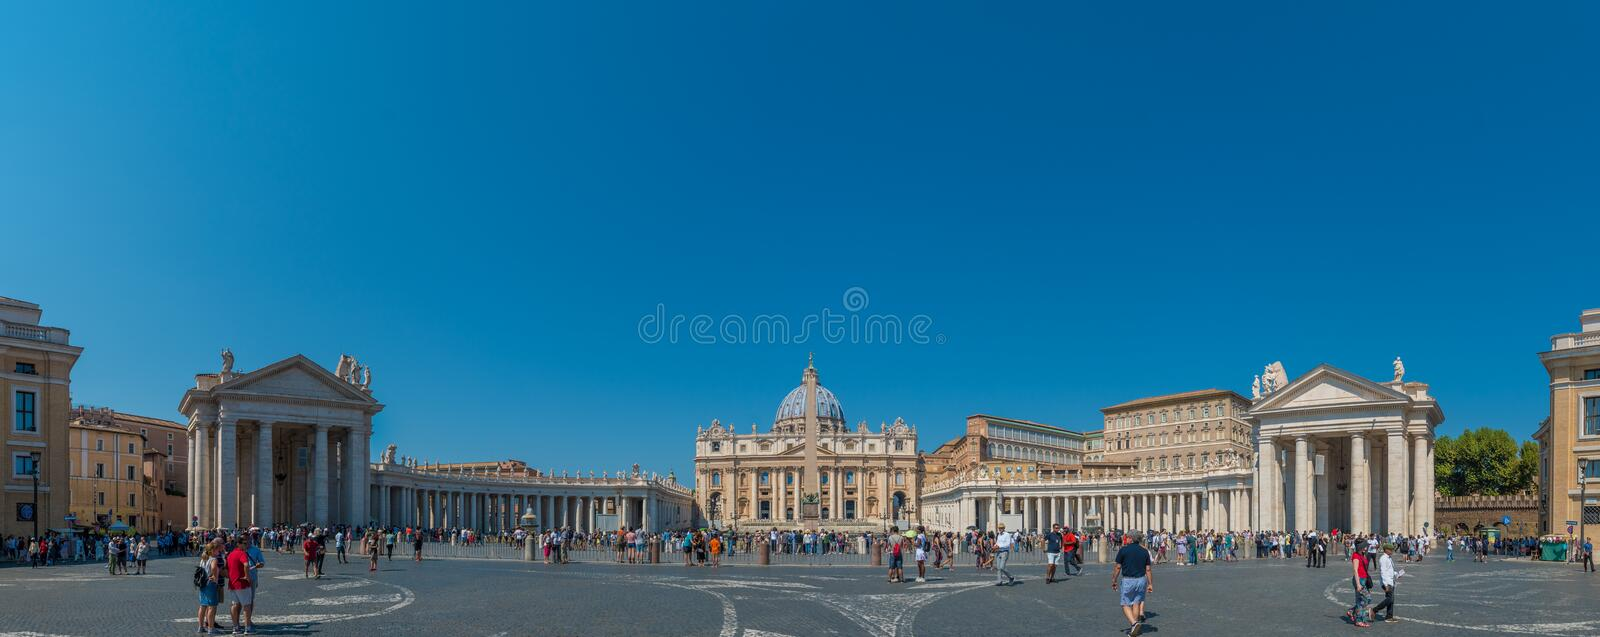 Panoramic of St. Peter`s Square in Vatican City. St. Peter`s Basilica and the Egyptian Obelisk in St. Peter`s Square in Vatican City stock images